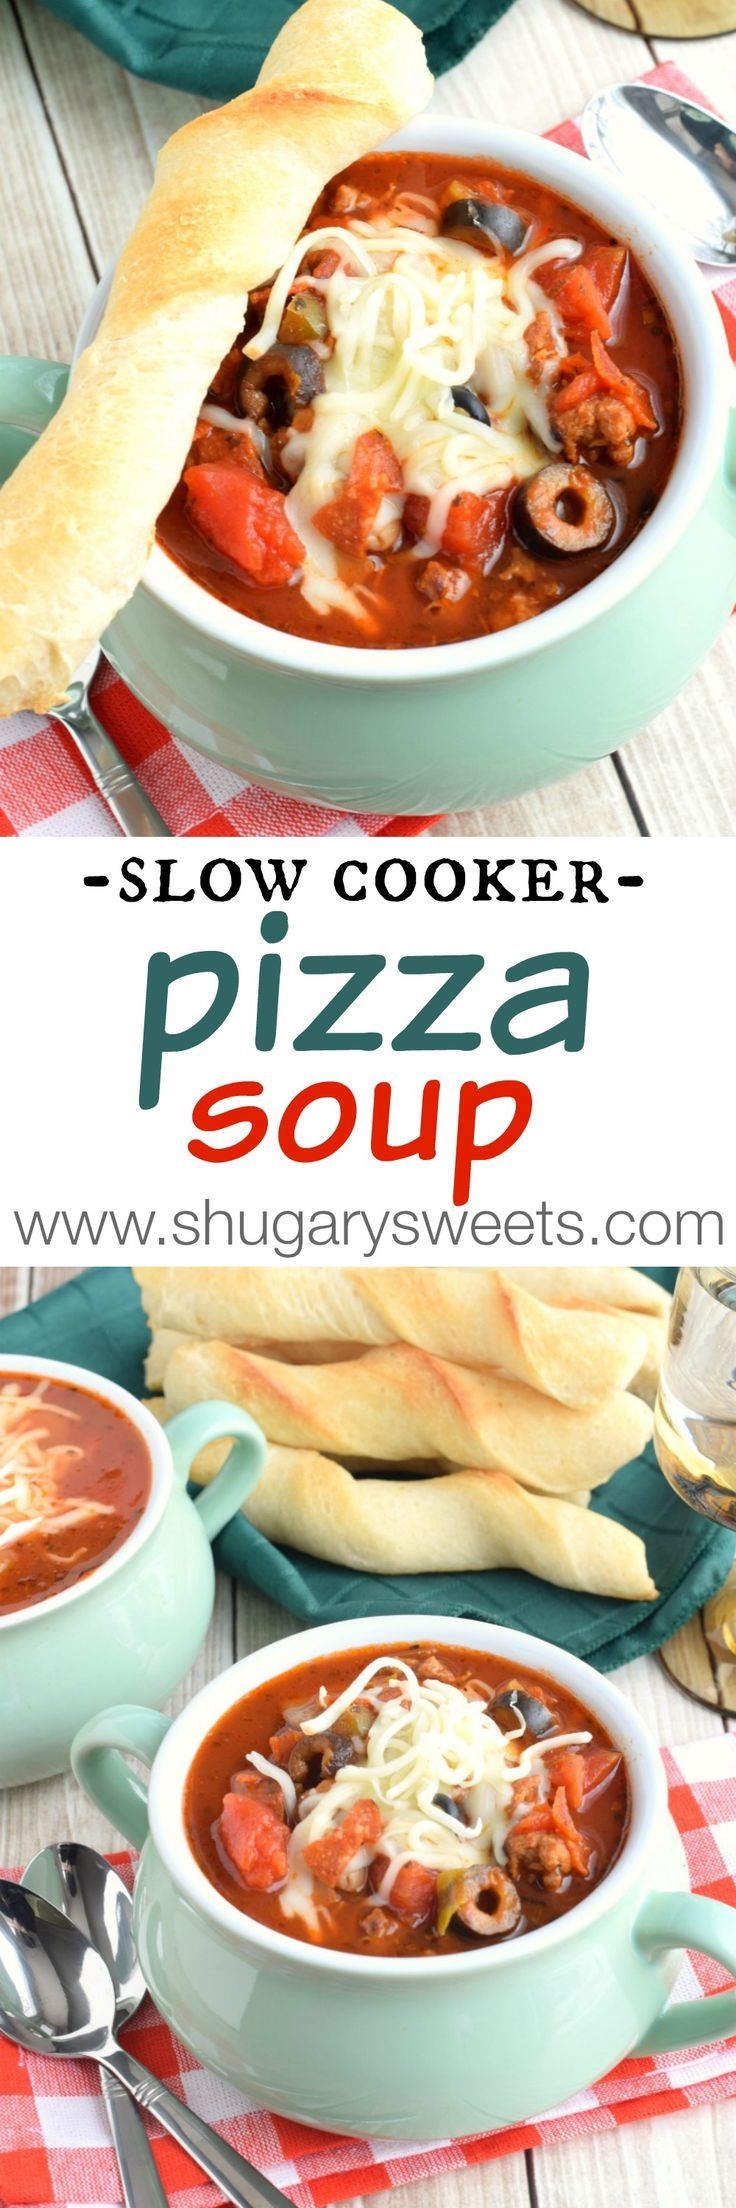 Slow Cooker Pizza Soup                                                                                                                                                                                 More